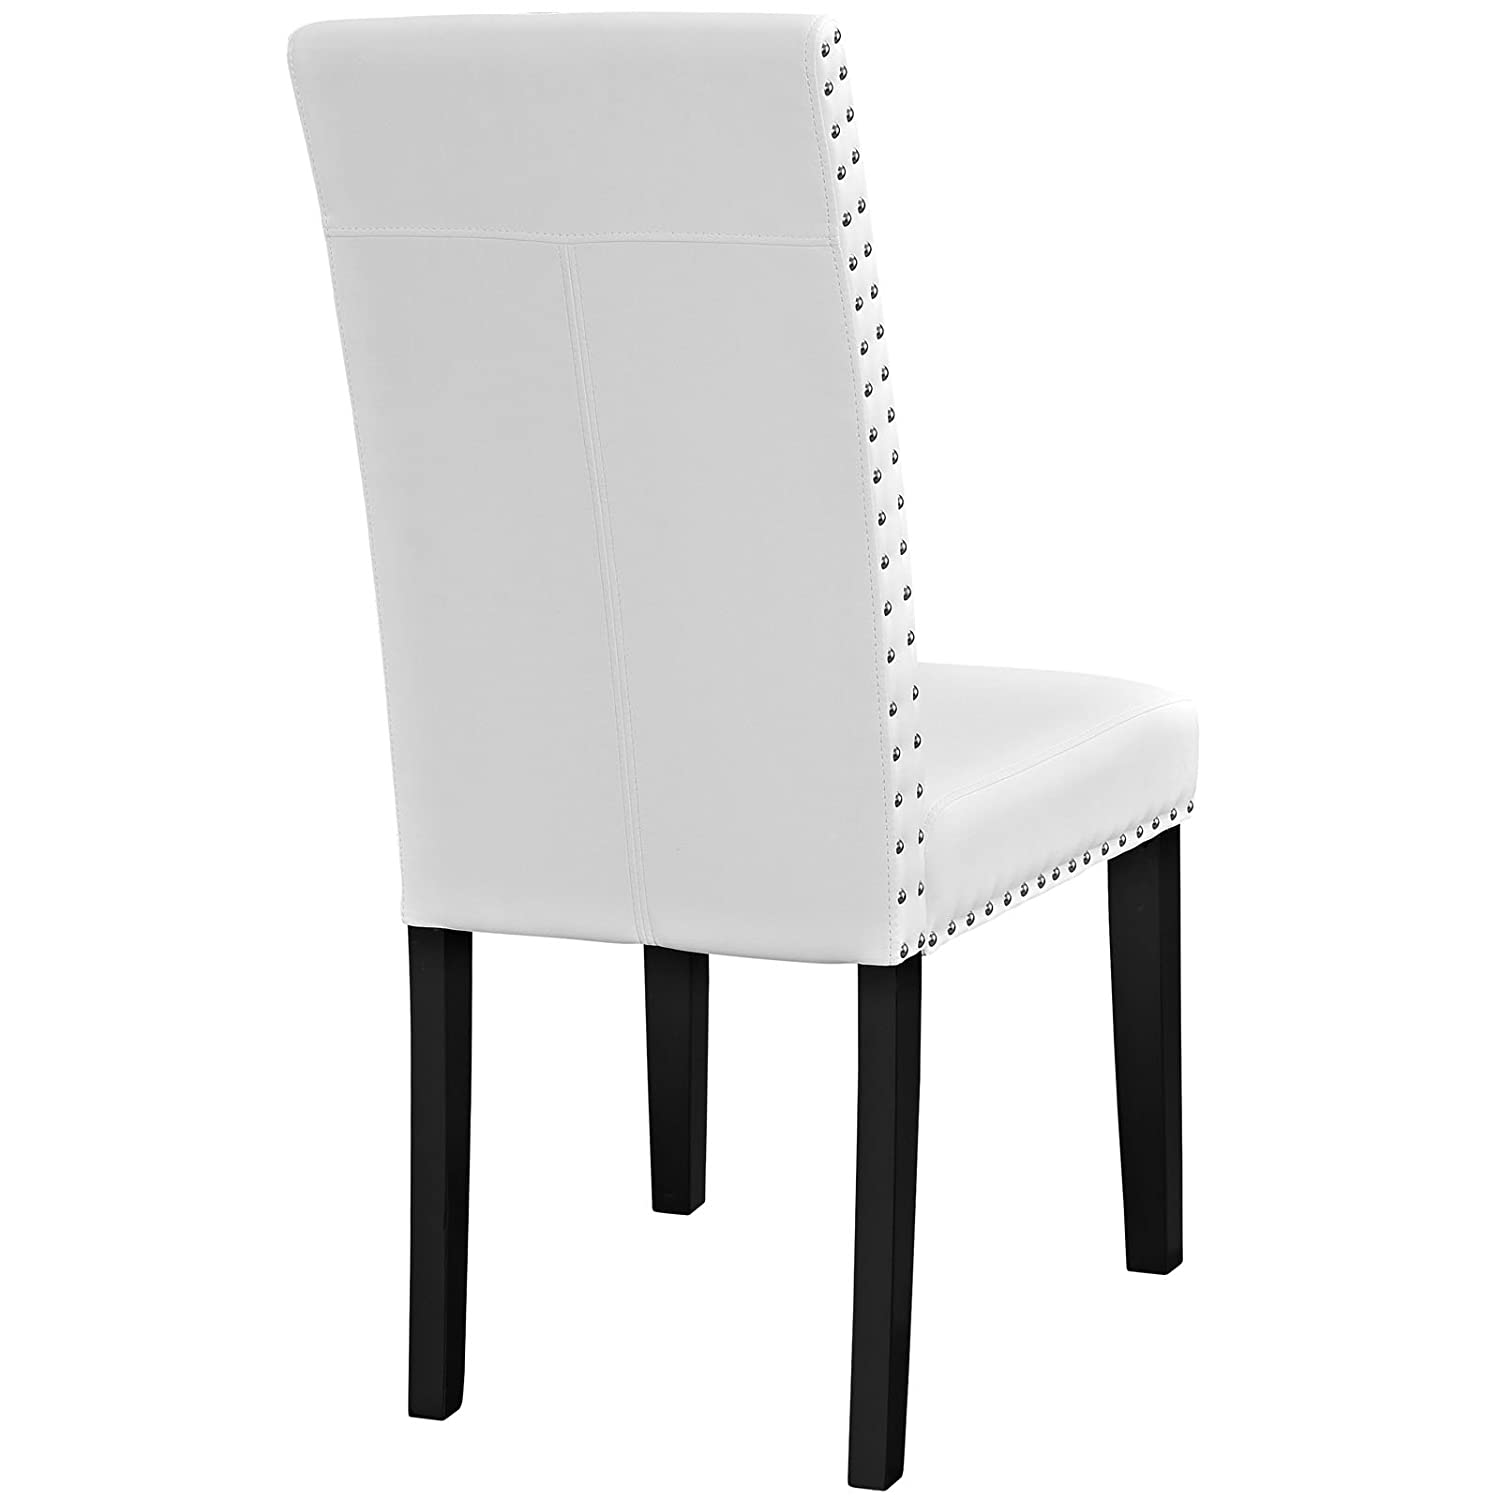 Ordinaire Amazon.com   Modway Parcel Modern Upholstered Vinyl Parsons Dining Chair  With Polished Nailhead Trim And Wood Legs In White   Chairs